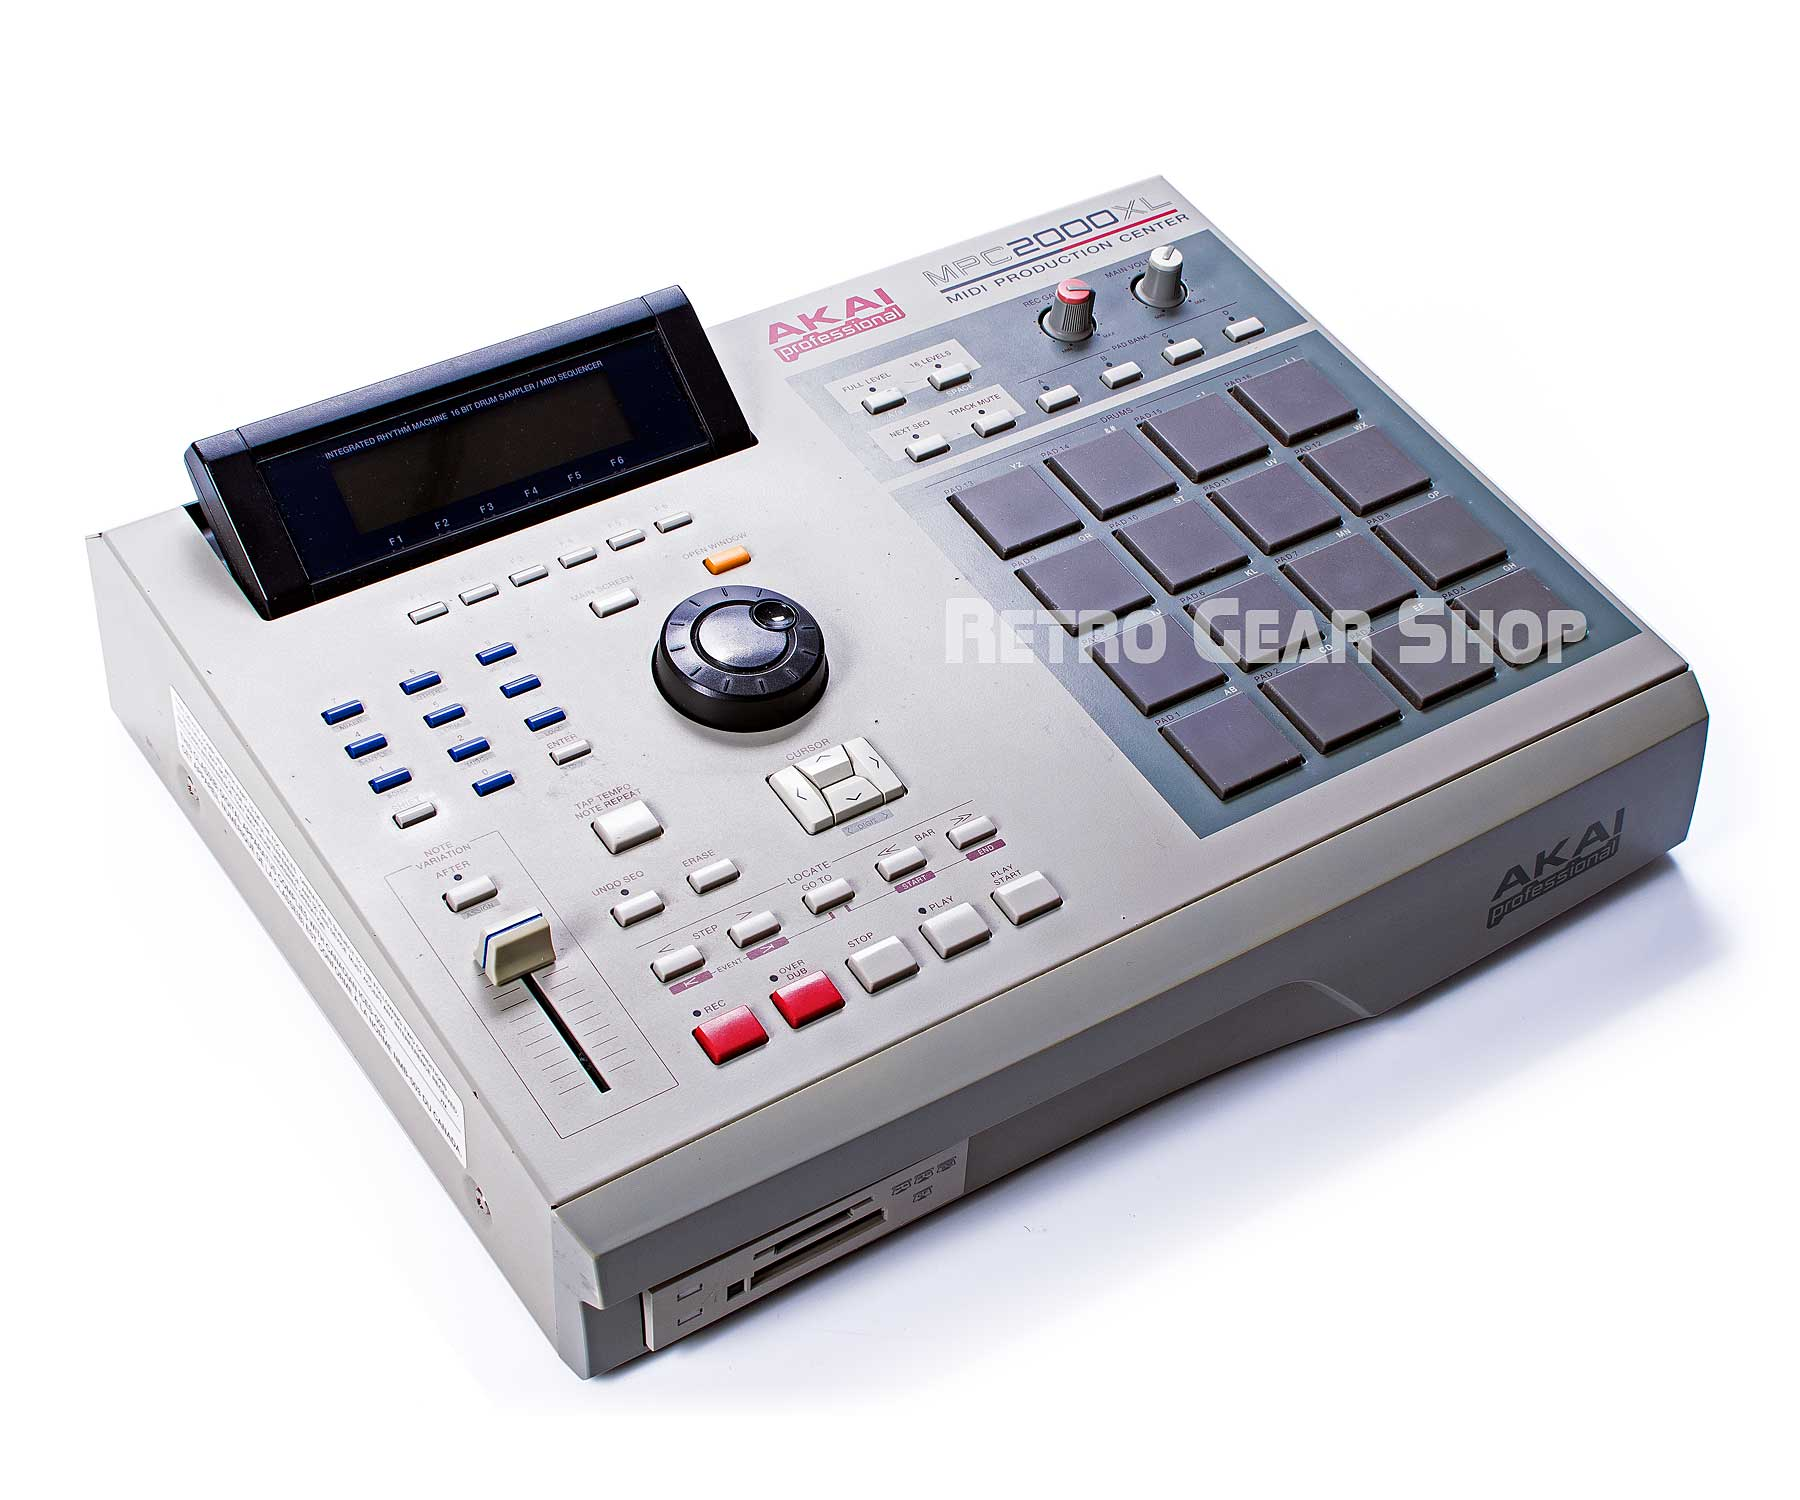 Akai MPC2000XL Sampling Drum Machine